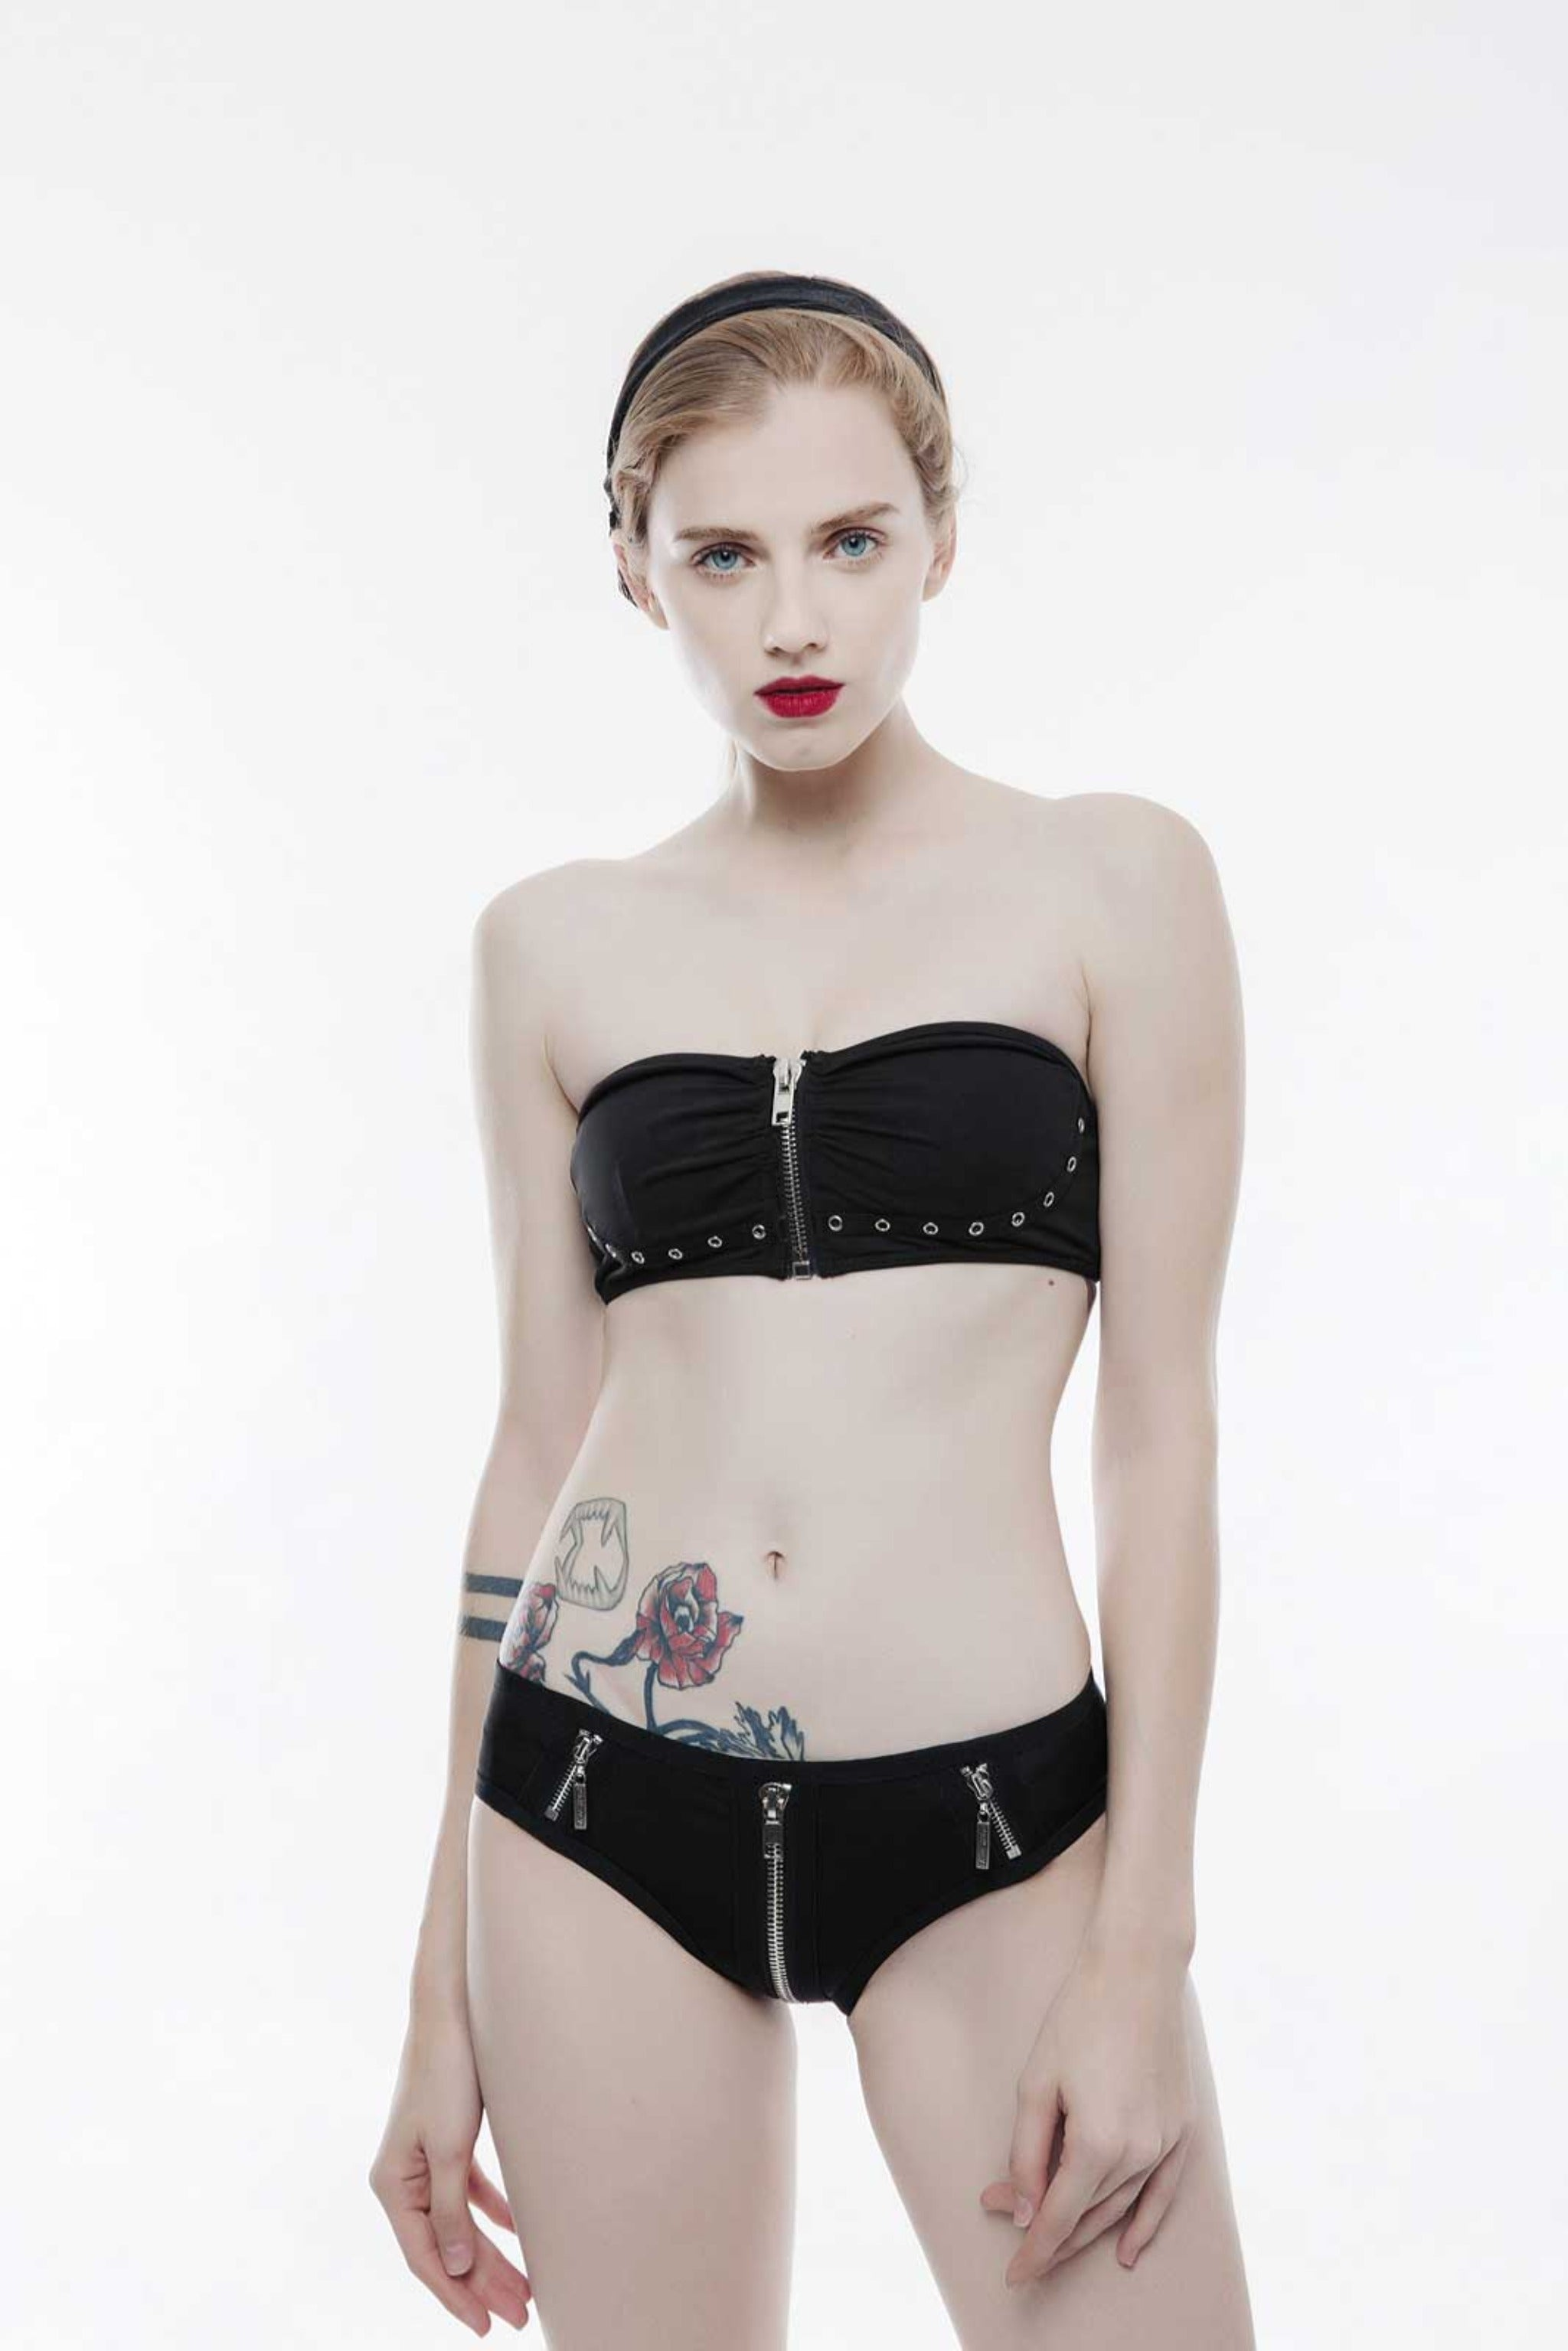 Moon Heart Bralette Bikini Top - Goth Mall